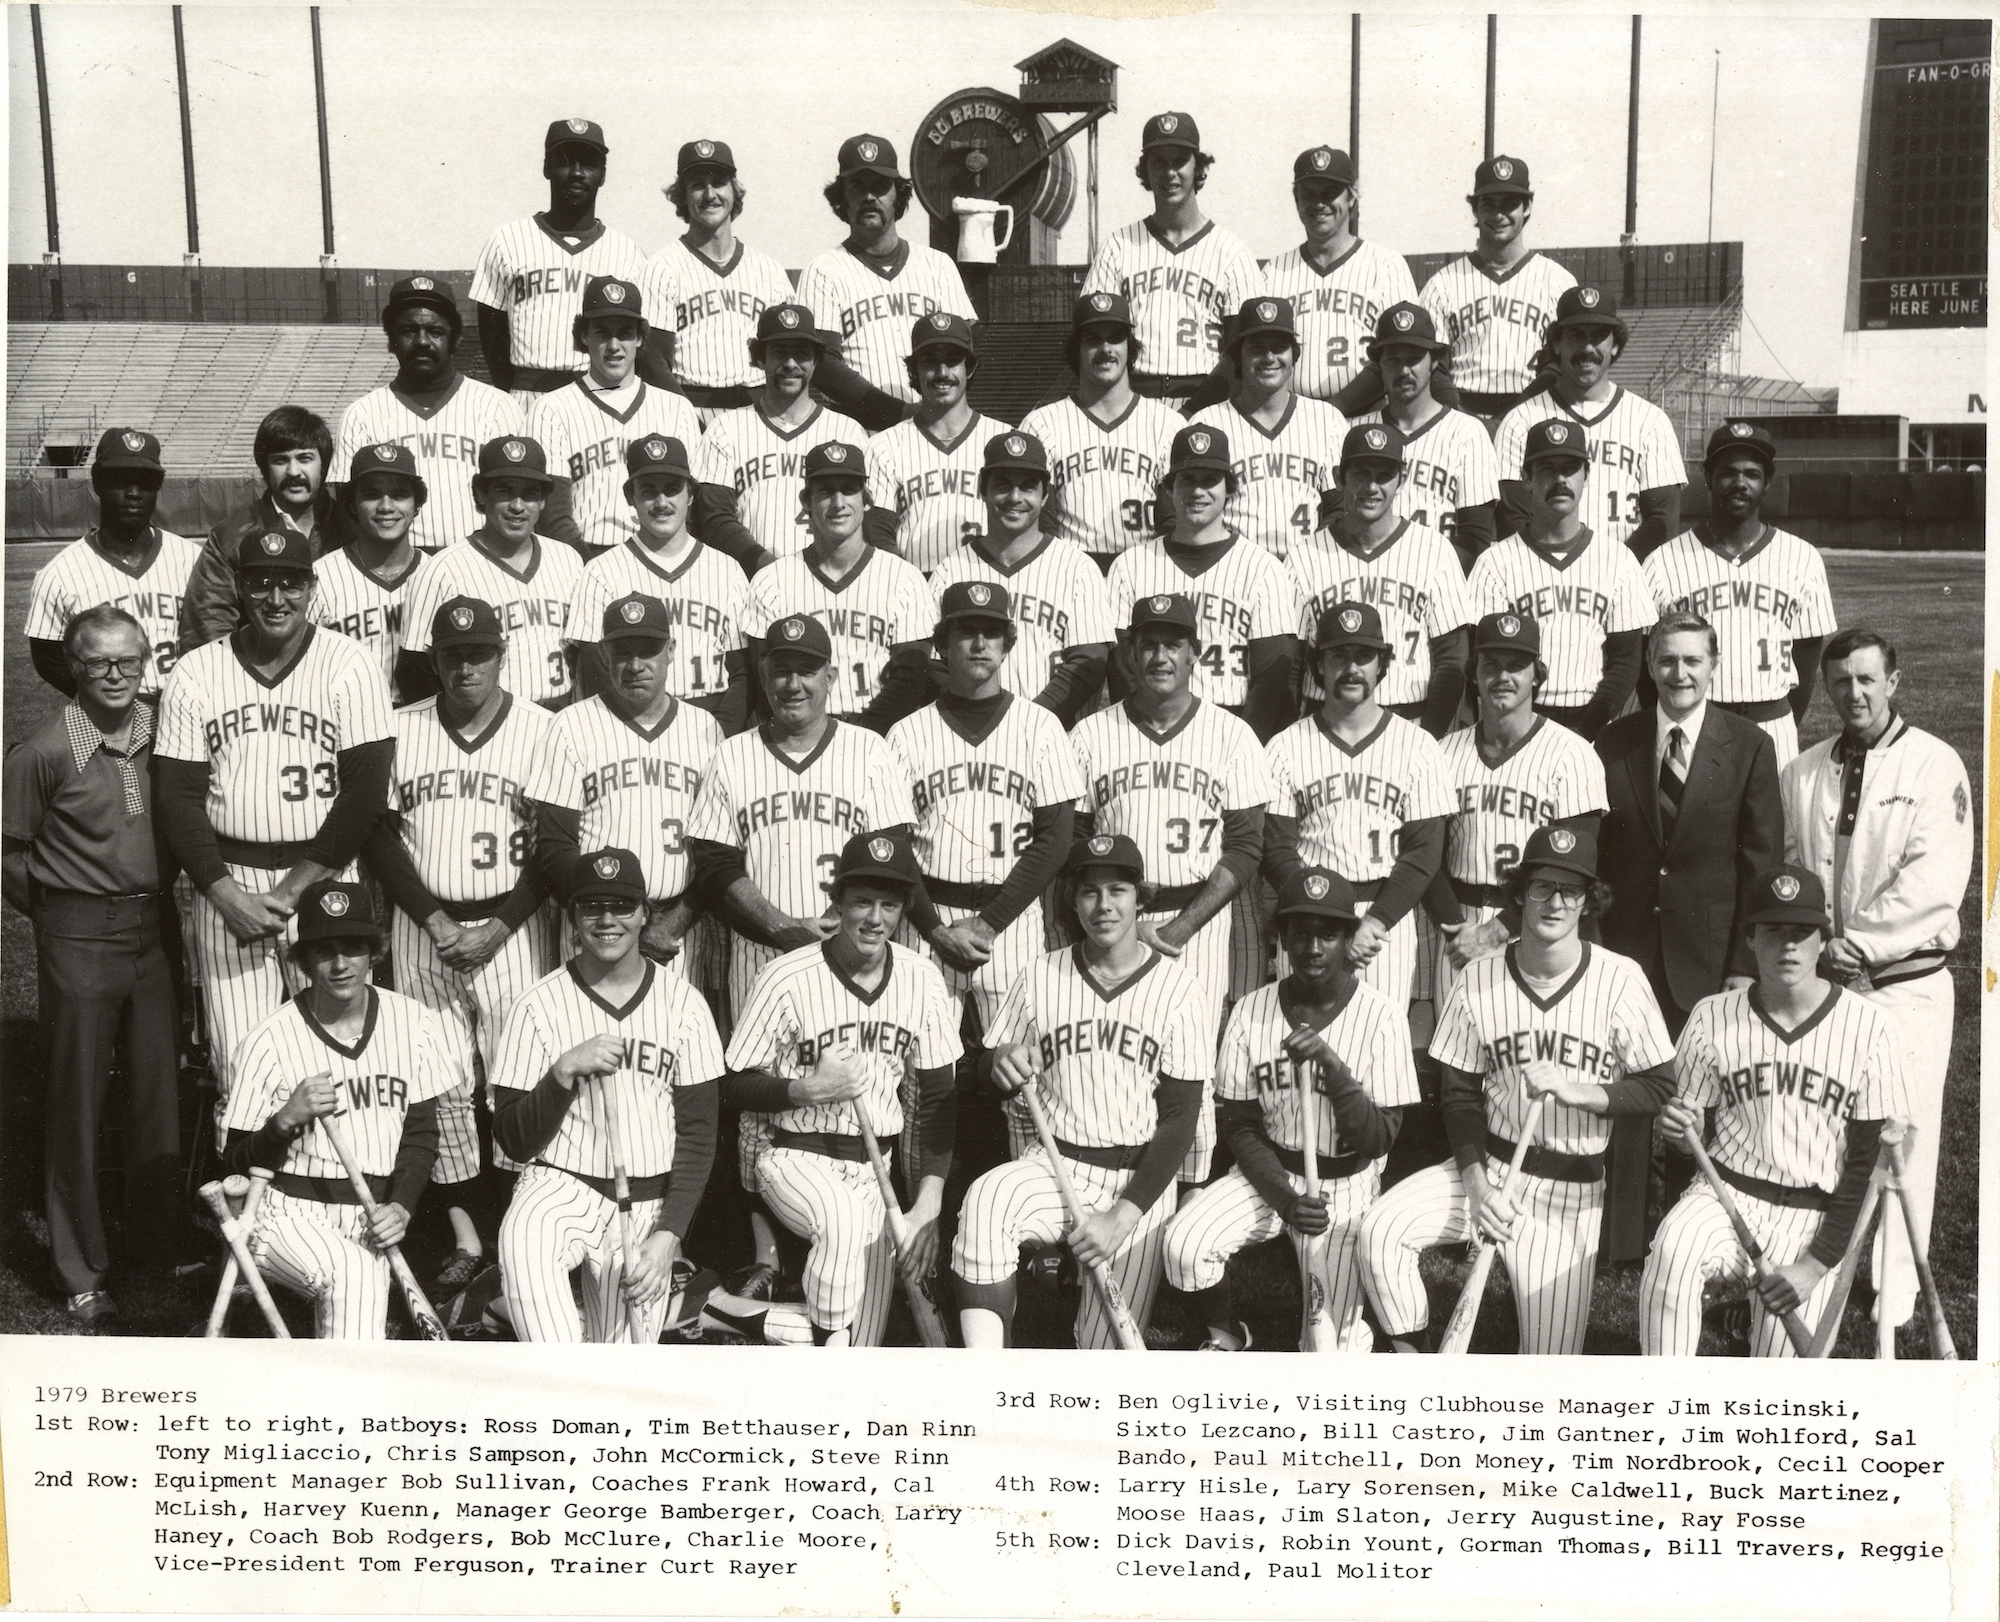 <table class=&quot;lightbox&quot;><tr><td colspan=2 class=&quot;lightbox-title&quot;>1979 Milwaukee Brewers</td></tr><tr><td colspan=2 class=&quot;lightbox-caption&quot;>Team photograph of the 1979 Milwaukee Brewers. During this season they accumulated 95 wins, 66 losses, and finished second in the American League East. </td></tr><tr><td colspan=2 class=&quot;lightbox-spacer&quot;></td></tr><tr class=&quot;lightbox-detail&quot;><td class=&quot;cell-title&quot;>Source: </td><td class=&quot;cell-value&quot;>From the Milwaukee County  Historical Society.<br /><a href=&quot;https://milwaukeehistory.net/research/photographic-collections/&quot; target=&quot;_blank&quot;>Milwaukee County Historical Society</a></td></tr><tr class=&quot;filler-row&quot;><td colspan=2>&nbsp;</td></tr></table>